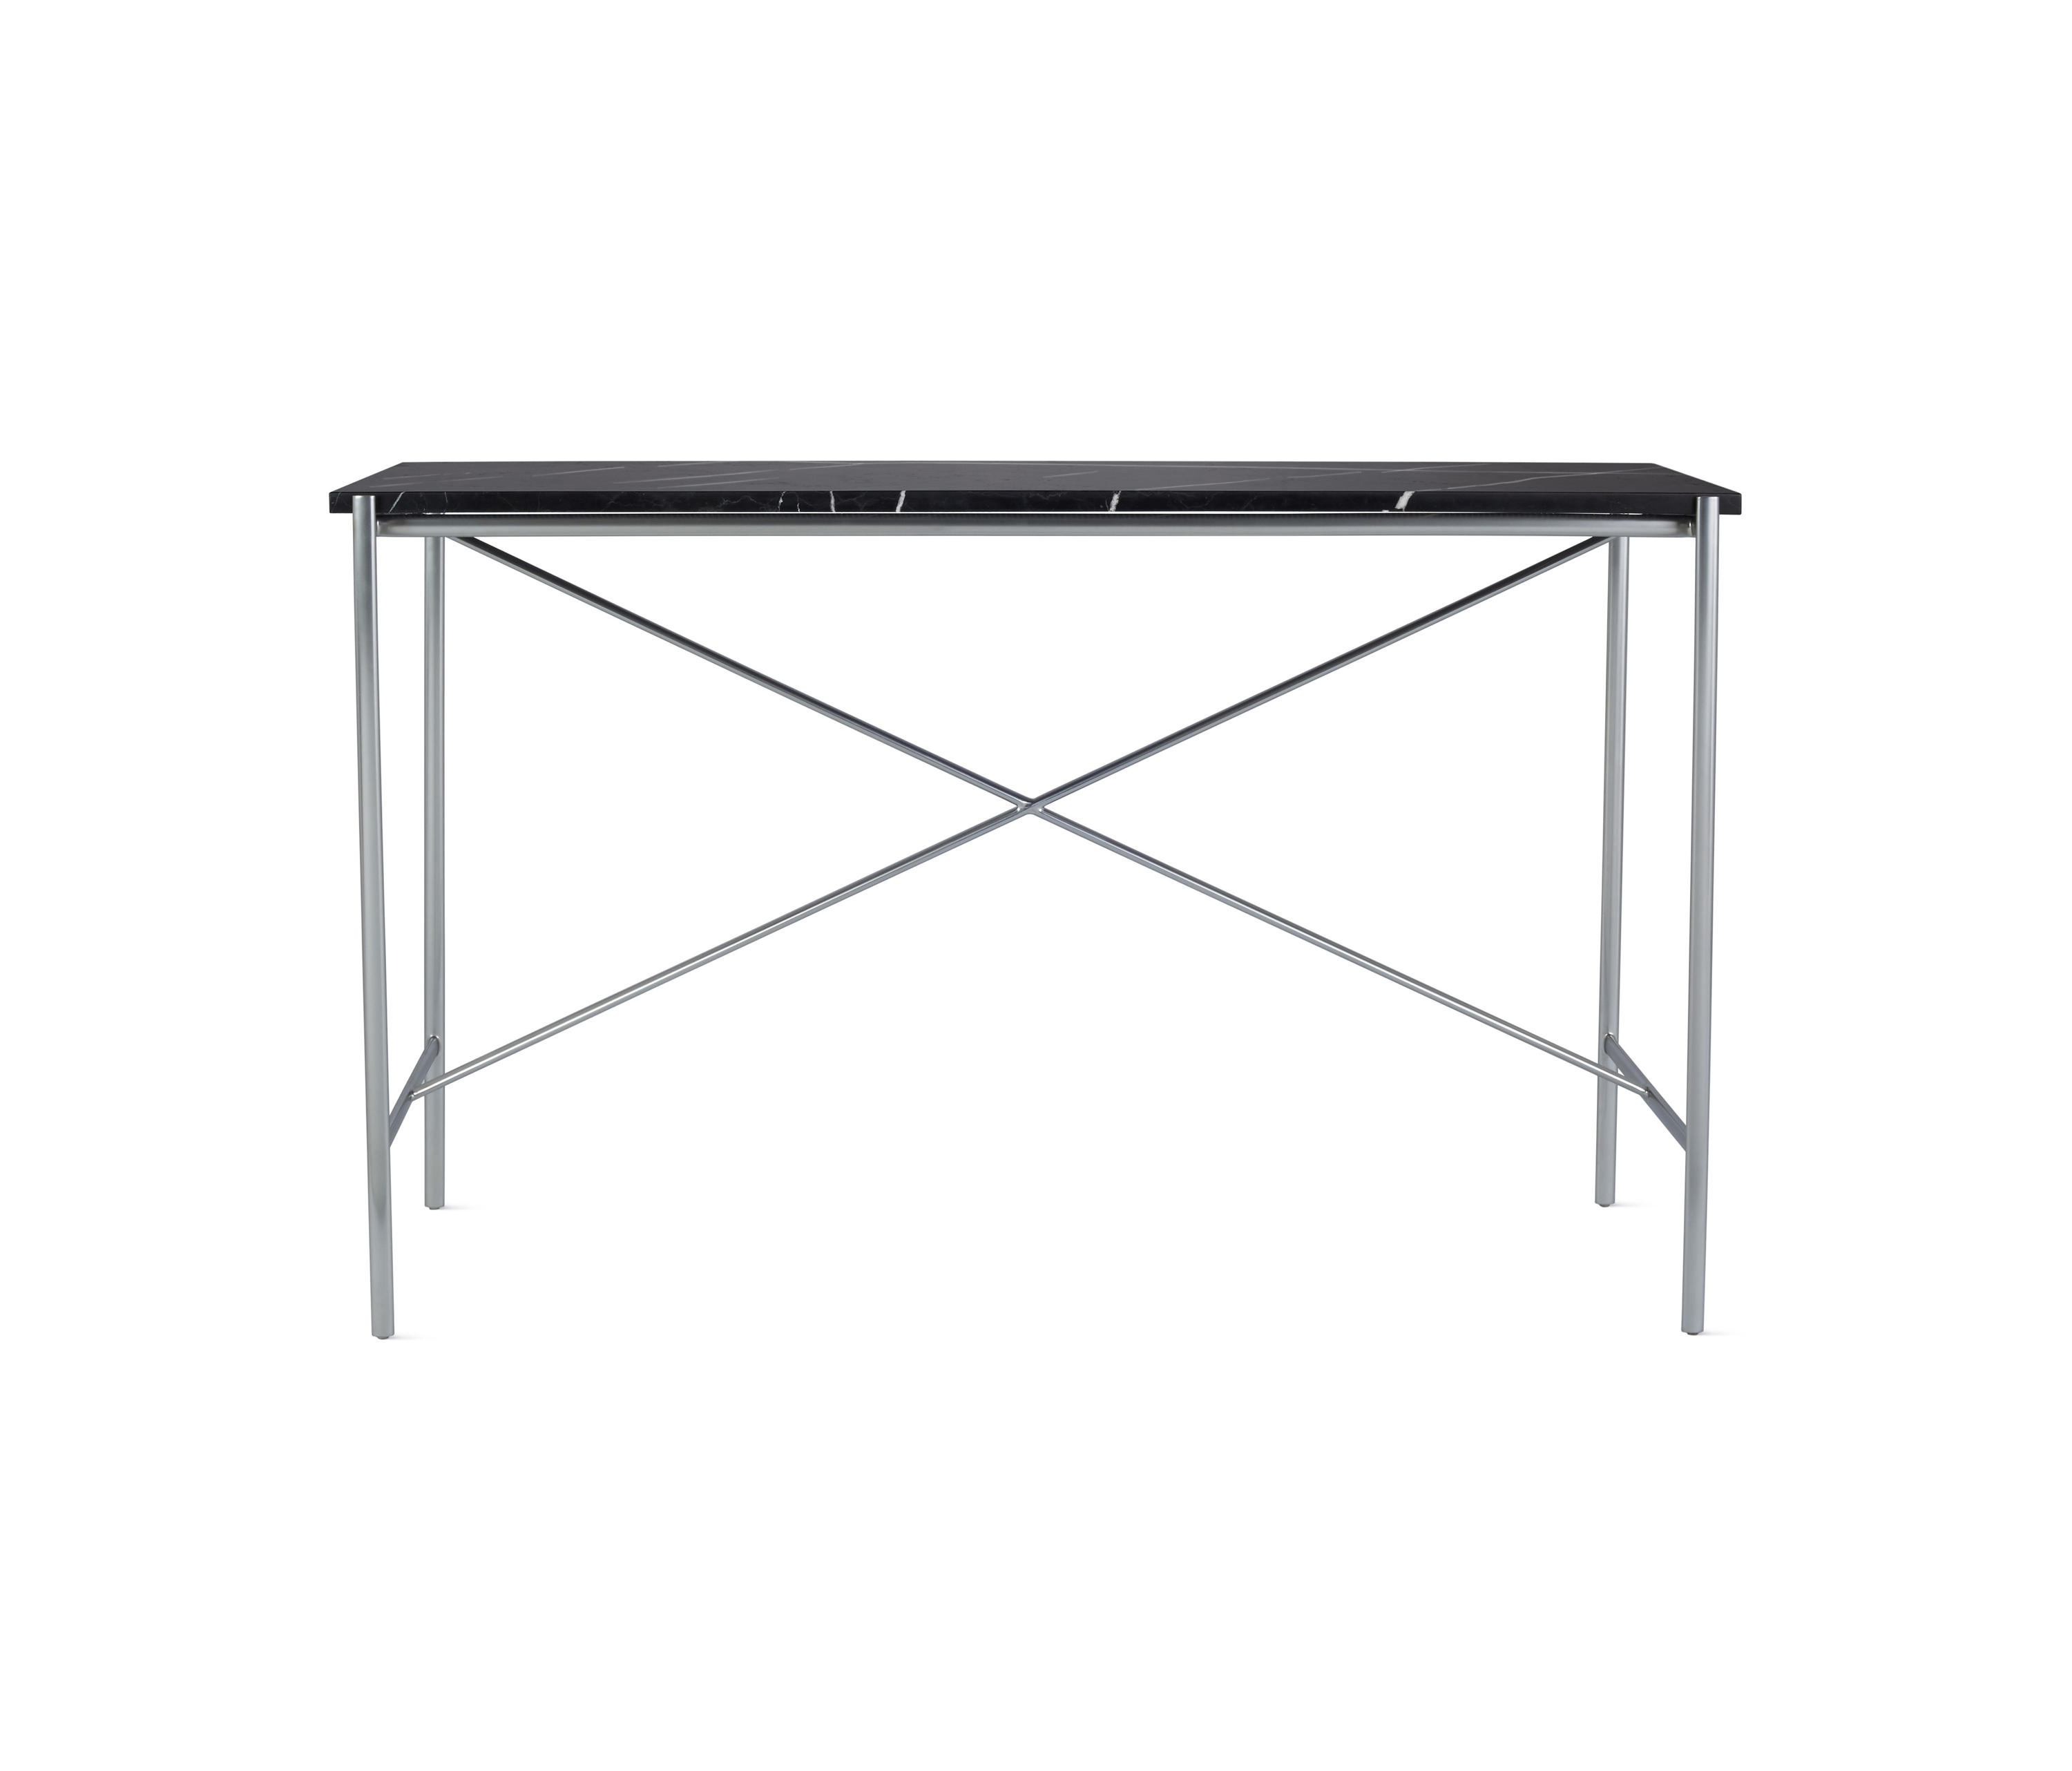 OUTLINE CONSOLE TABLE Console tables from Design Within Reach